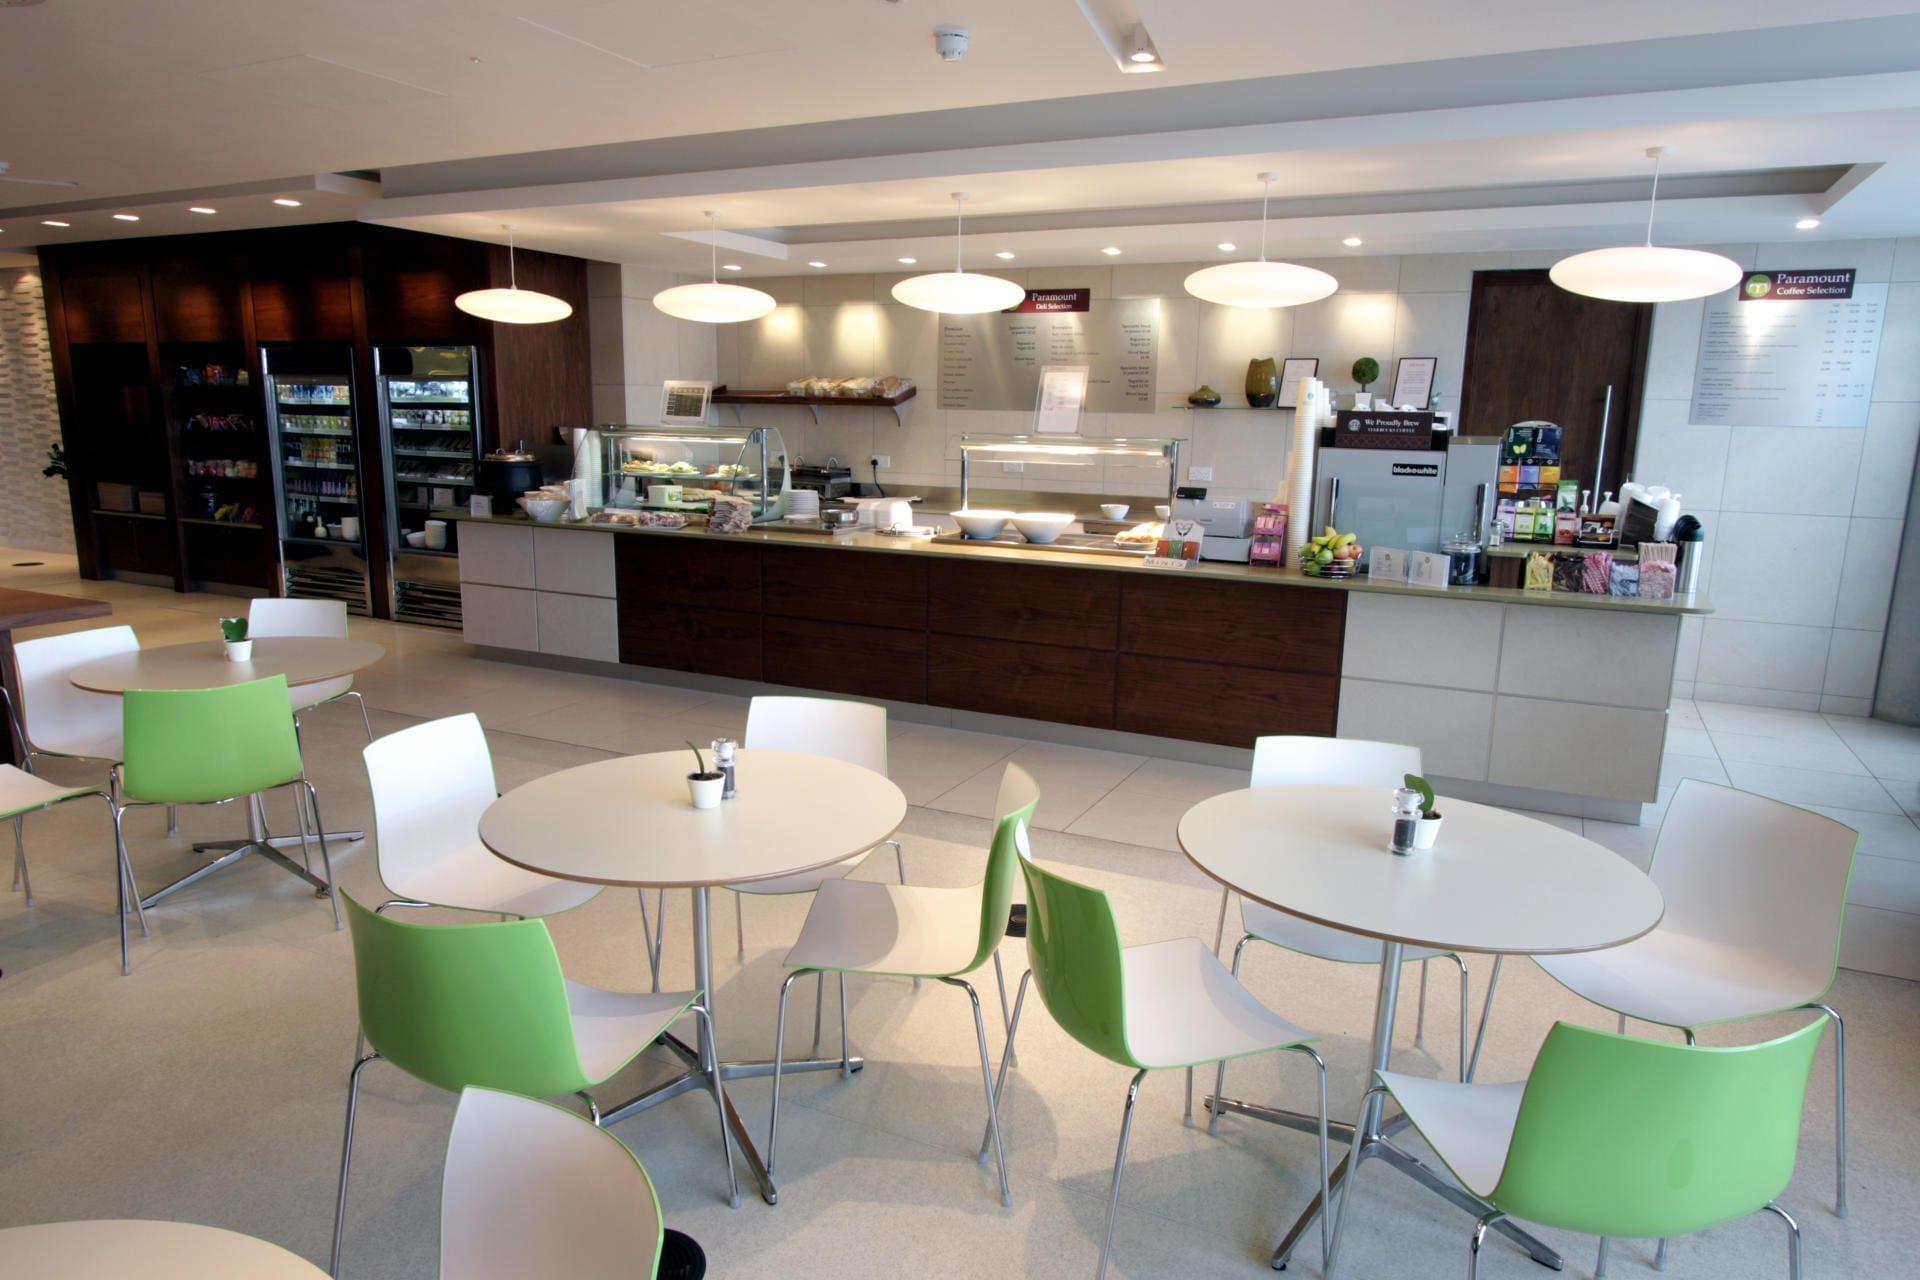 Paramount-Pictures-Charlton-House-Catering-Chiswick-Servery-Front-of-house-Servery-Food-Display-spacecatering_1